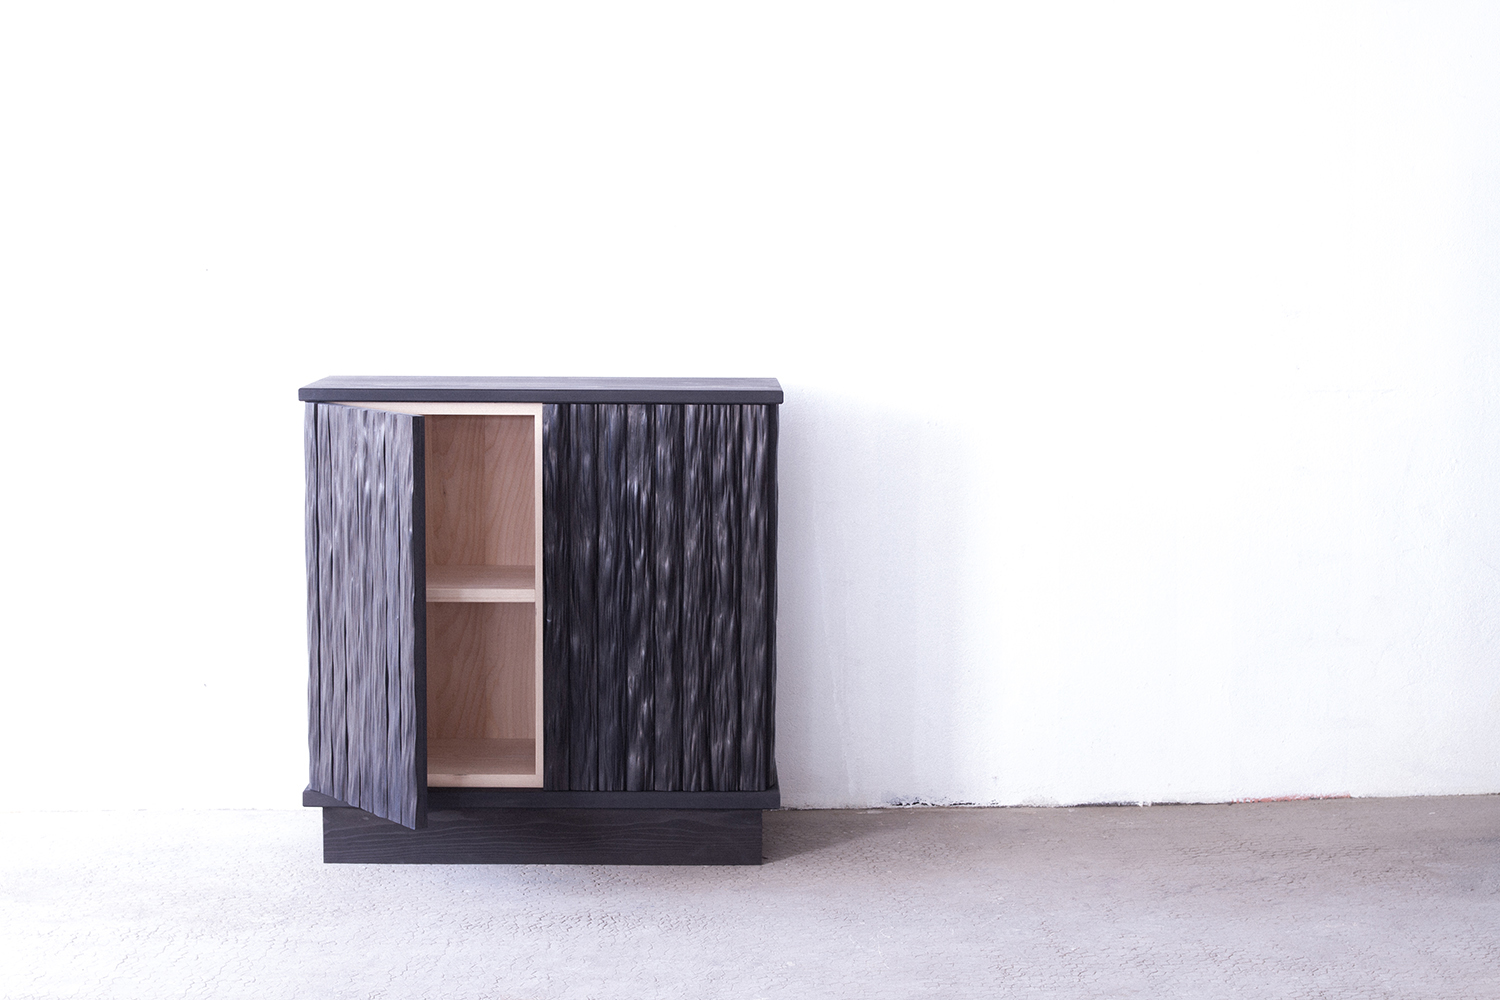 Shooting day: Kitayama sideboard.